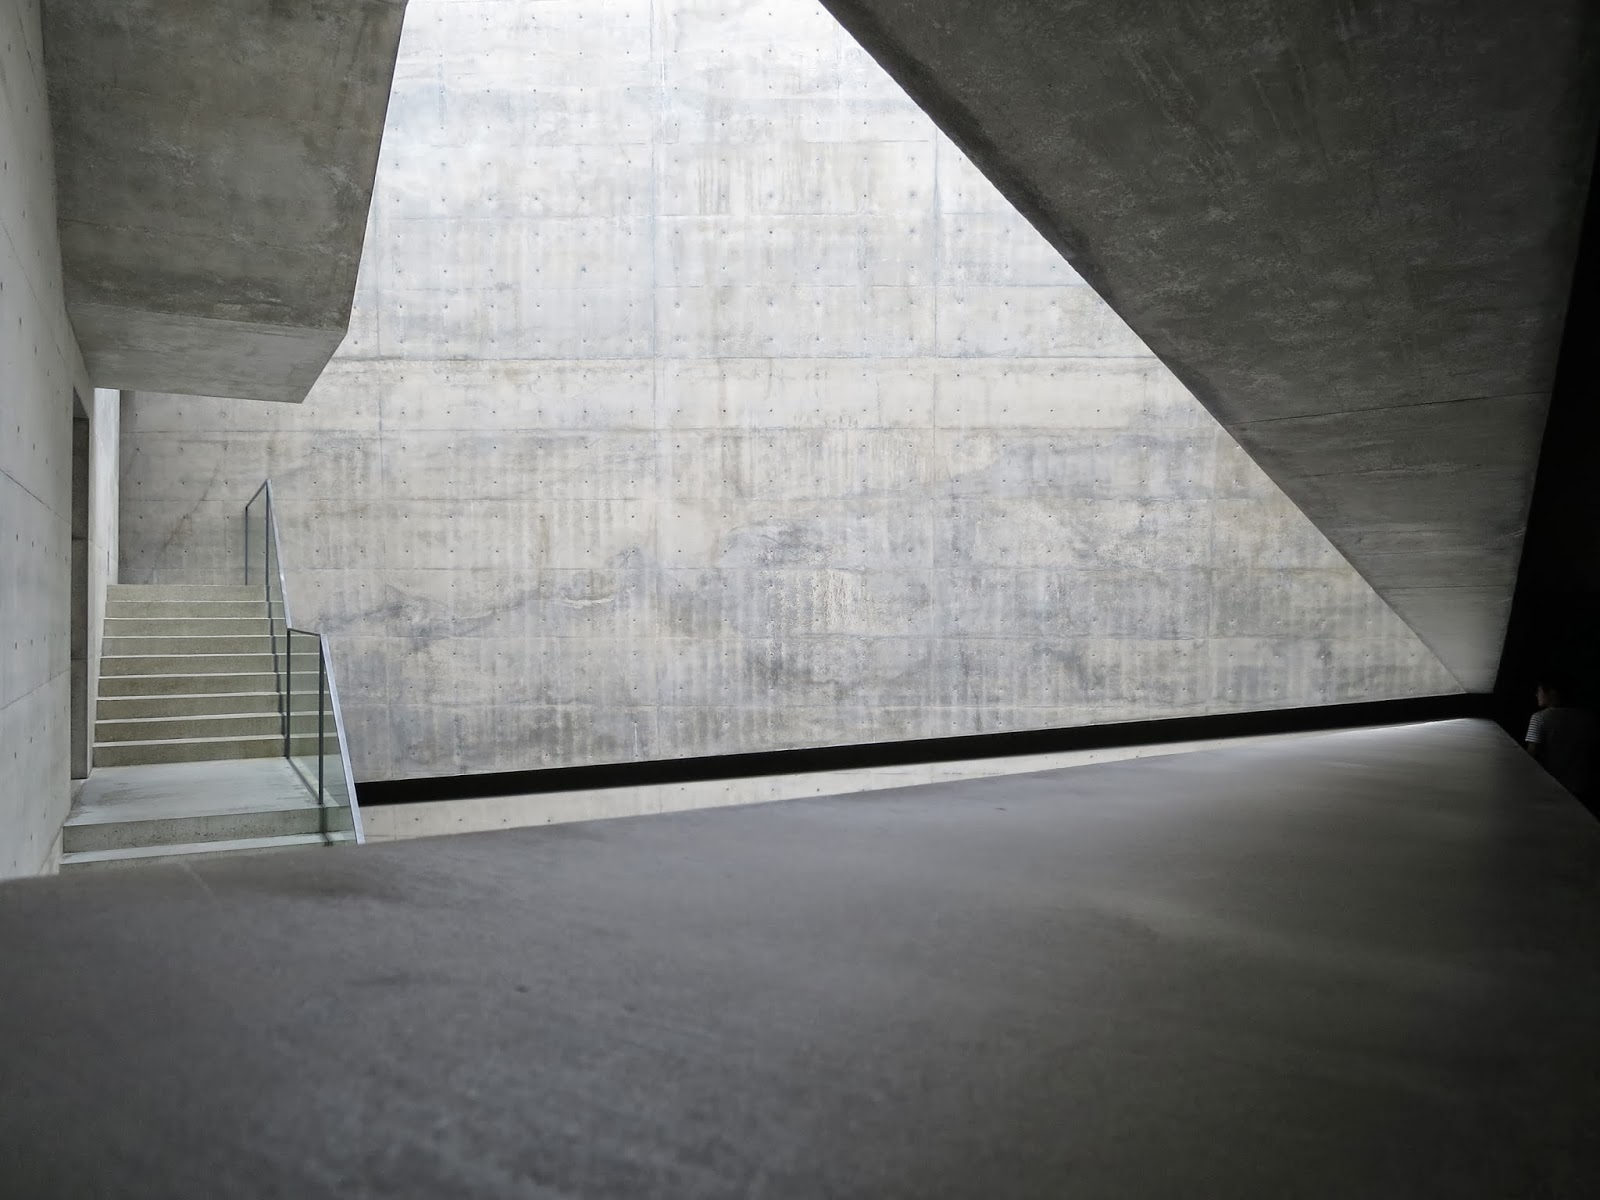 Art museum tadao ando and museums on pinterest for Architecture art